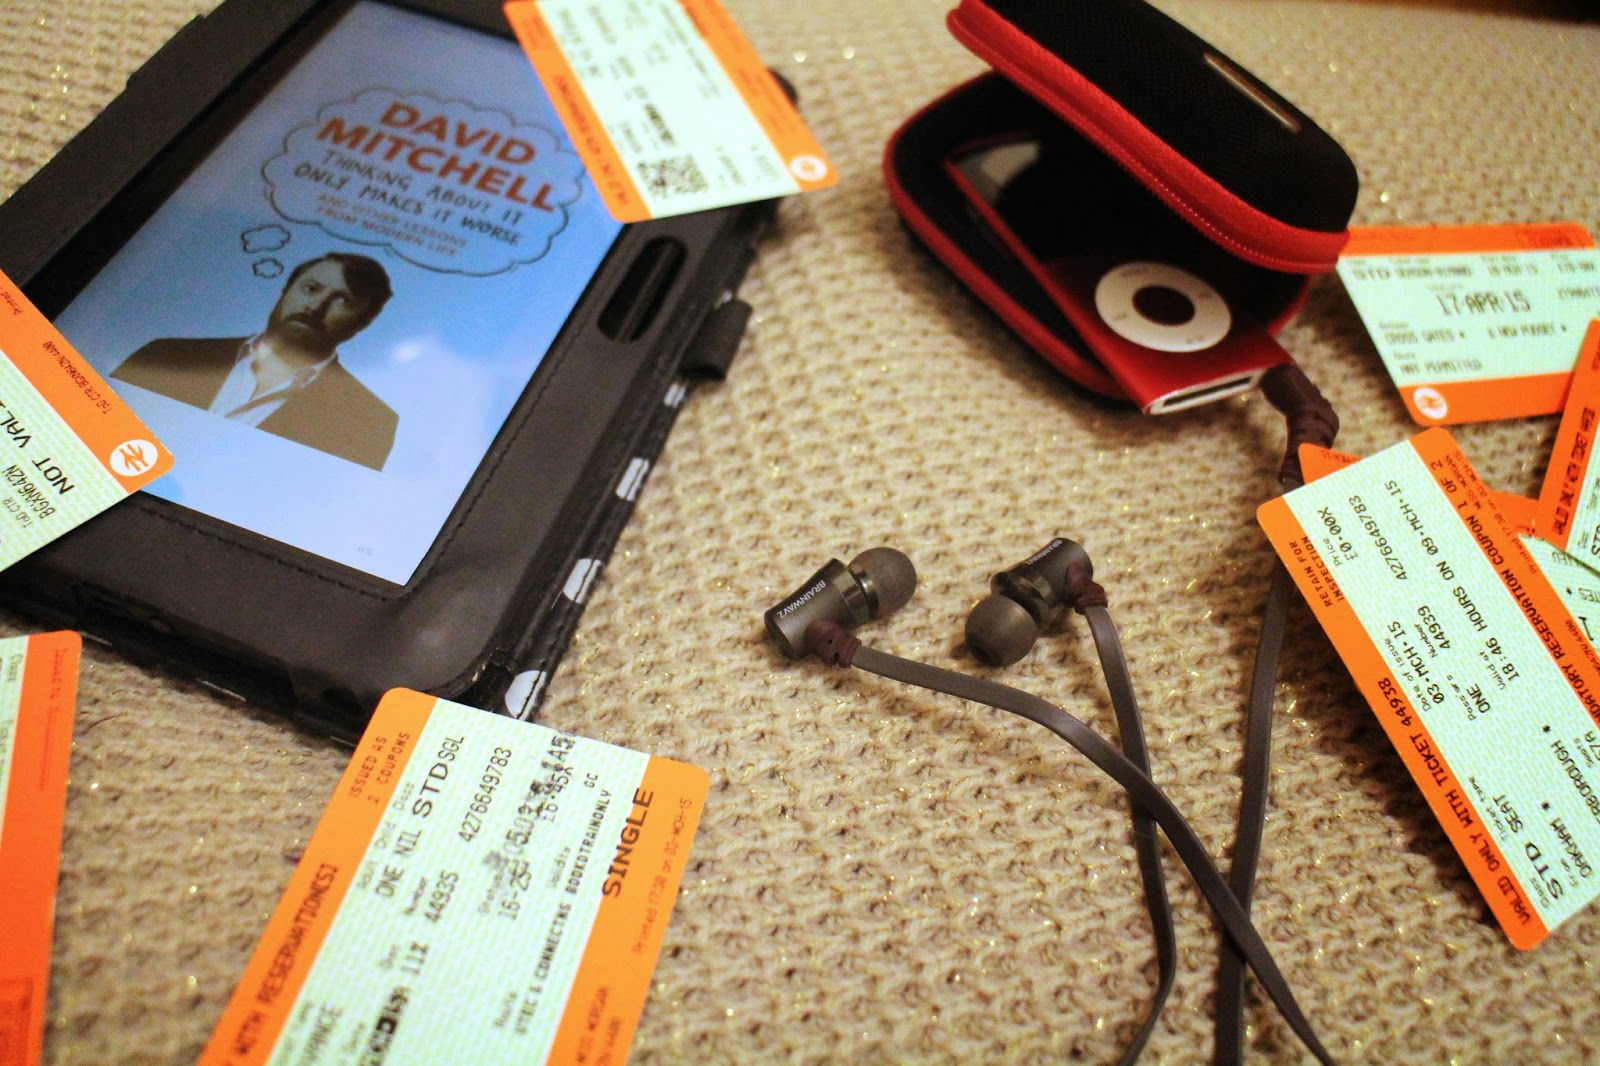 Brainwavz audio headphones, a kindle and train tickets